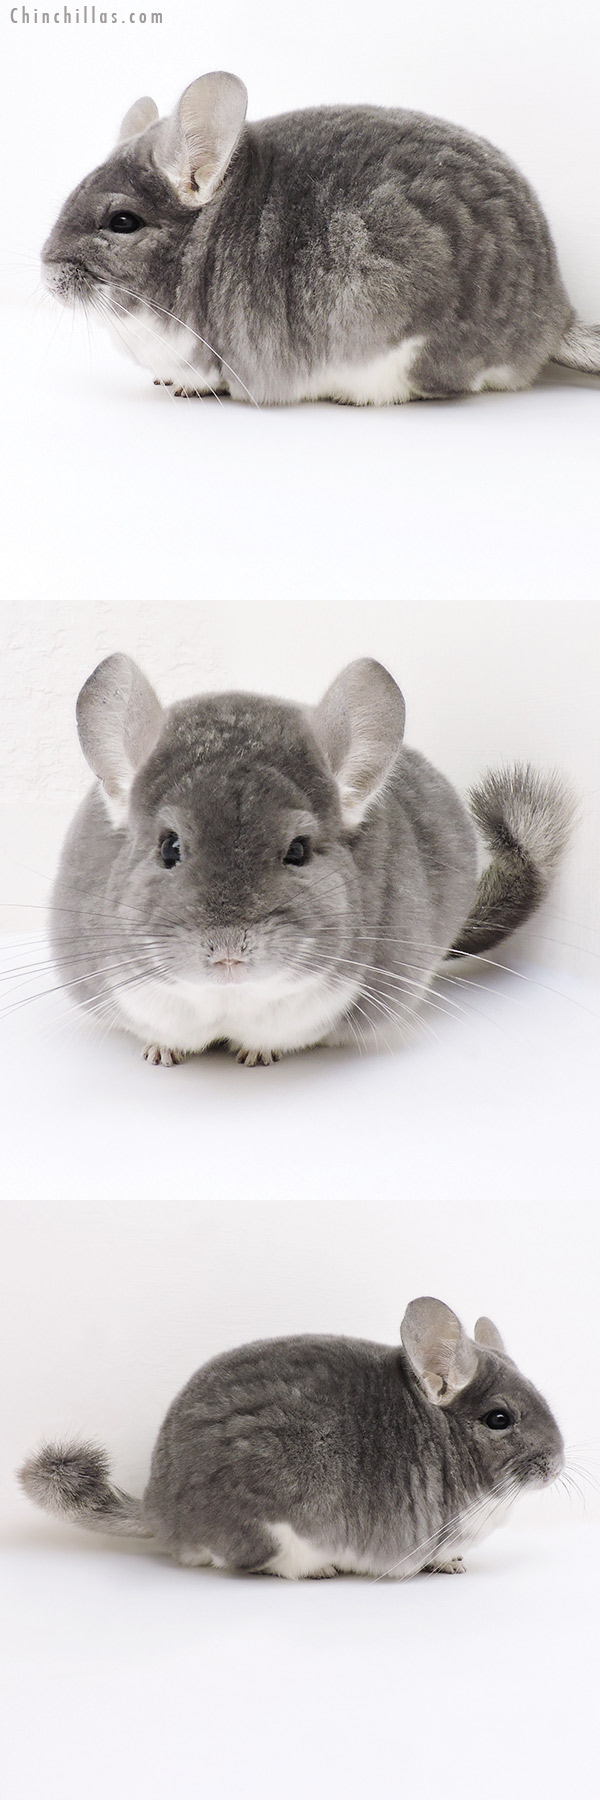 17020 Large Blocky Premium Production Quality Violet Female Chinchilla